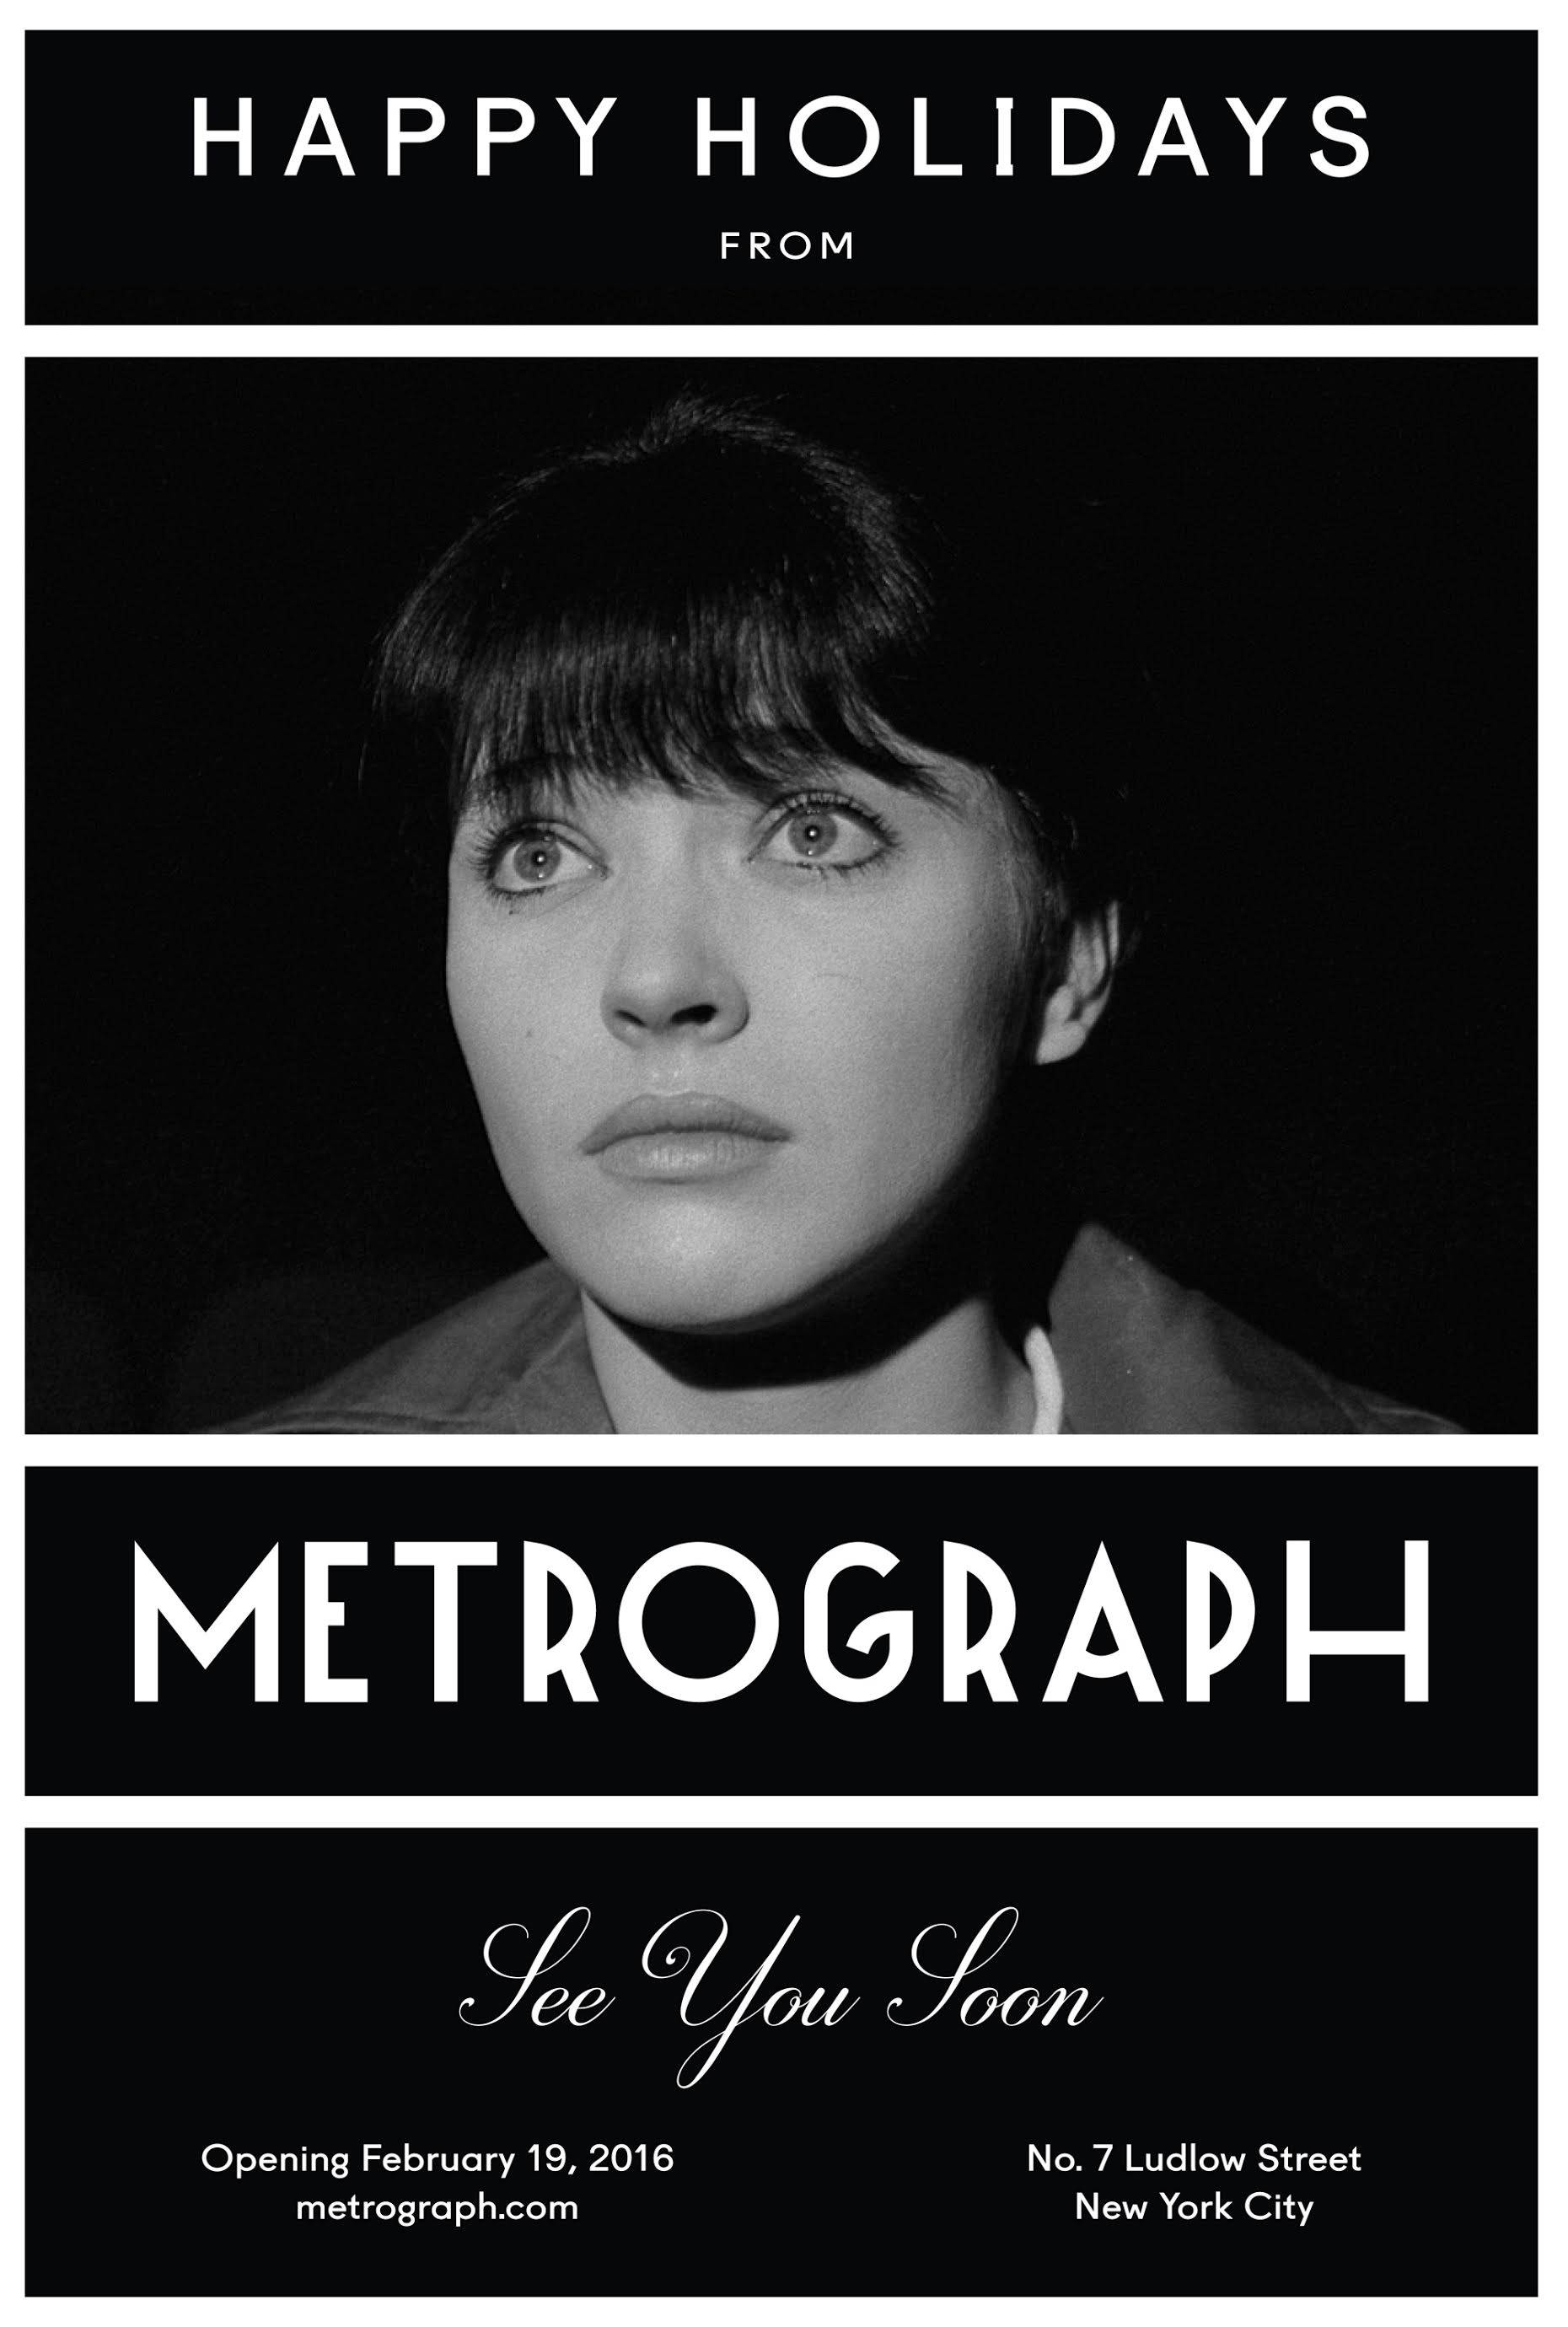 Metrograph Holiday Card